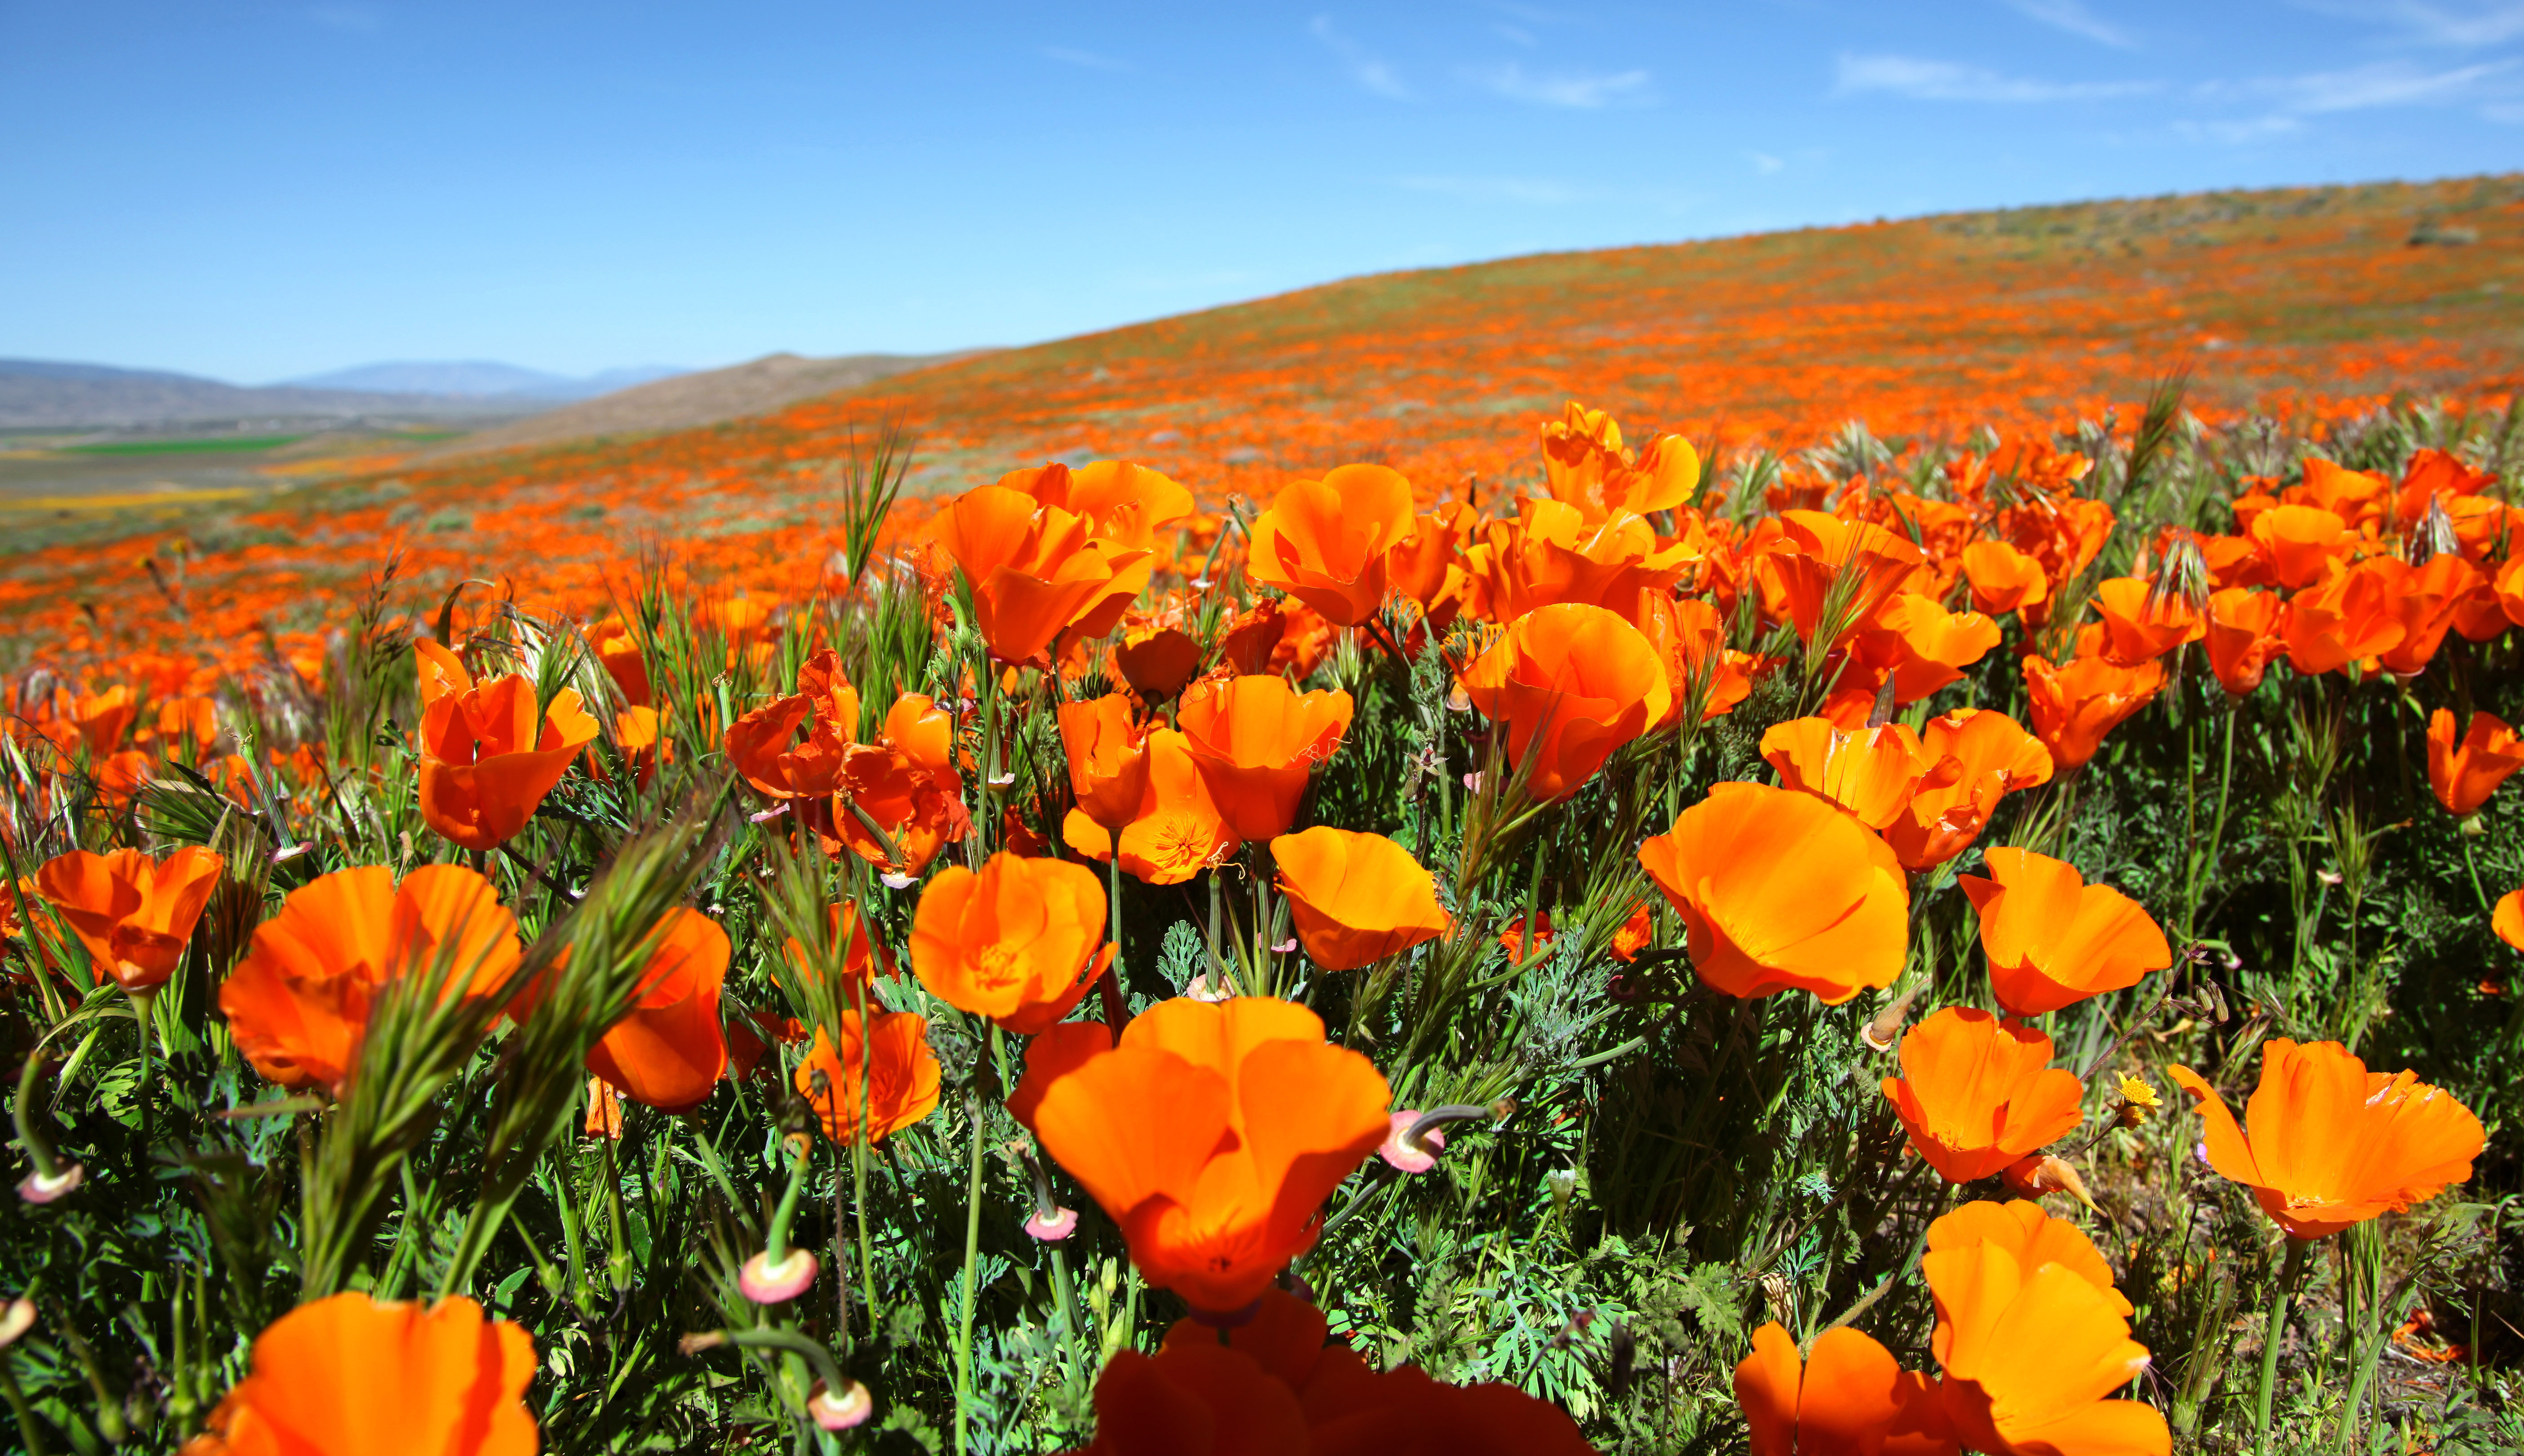 A field of California poppies